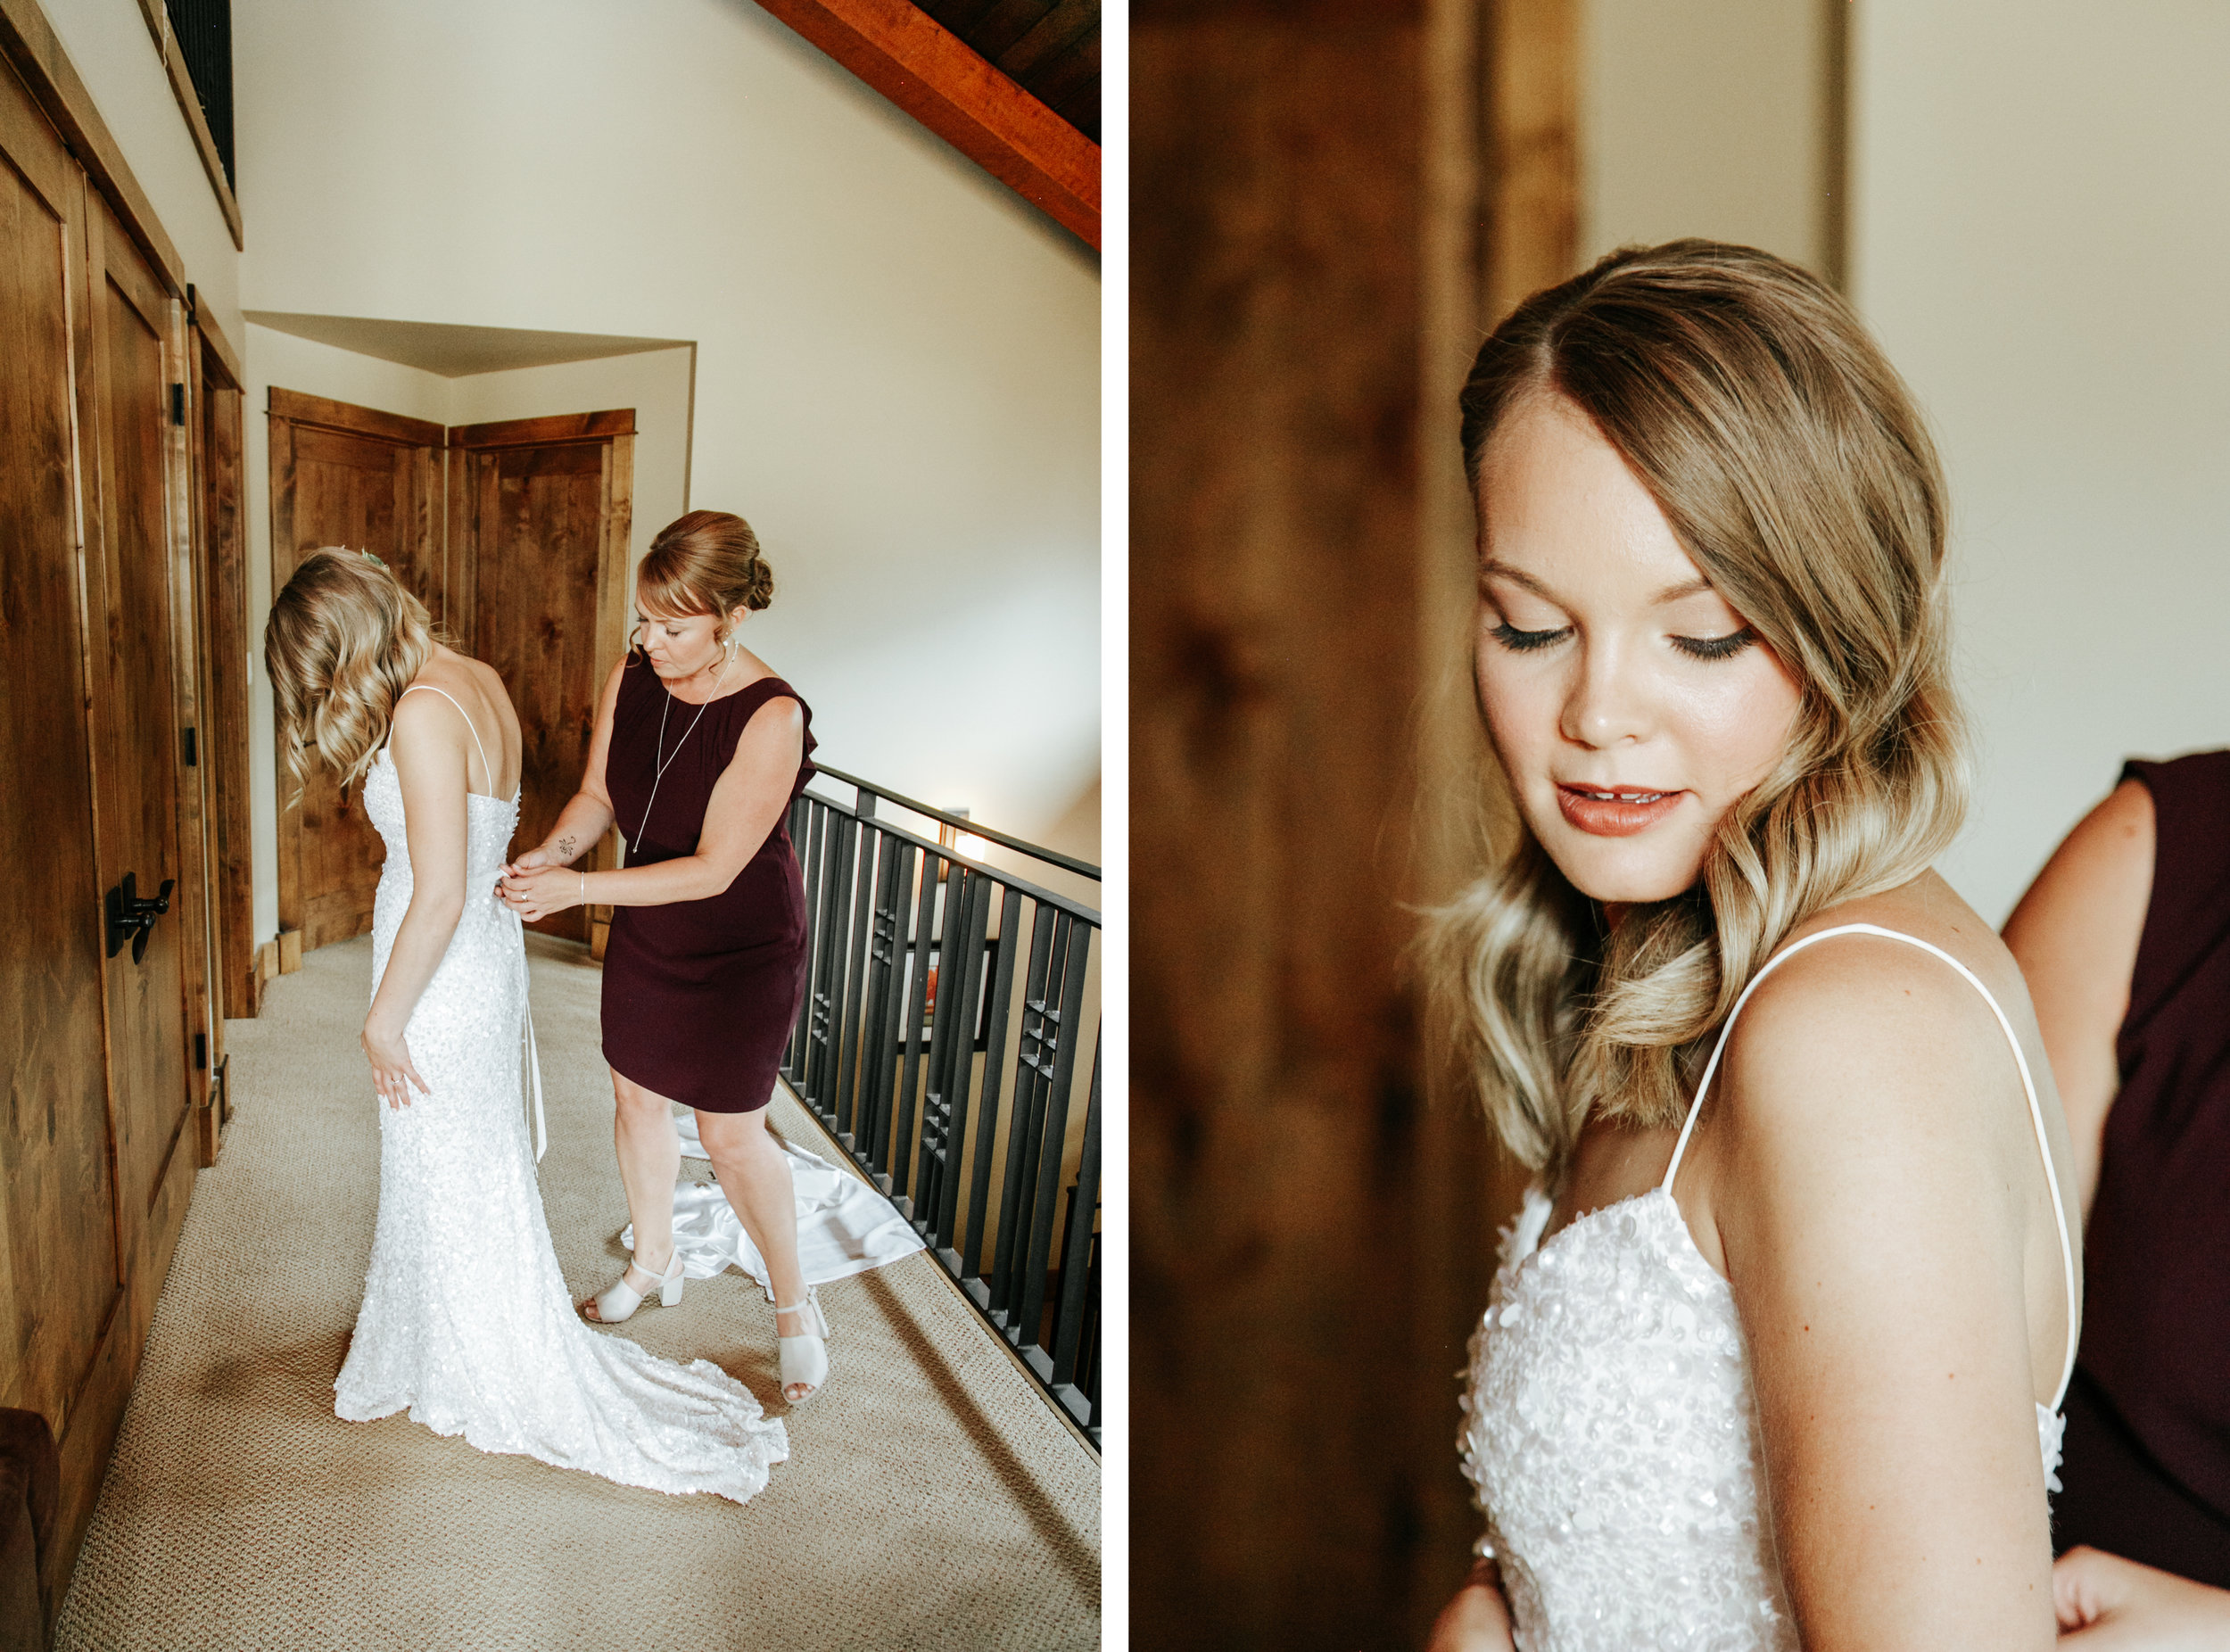 castle-mountain-wedding-photographer-love-and-be-loved-photography-lethbridge-pincher-creek-crowsnest-pass-yannick-rylee-photo-image-picture-15.jpg